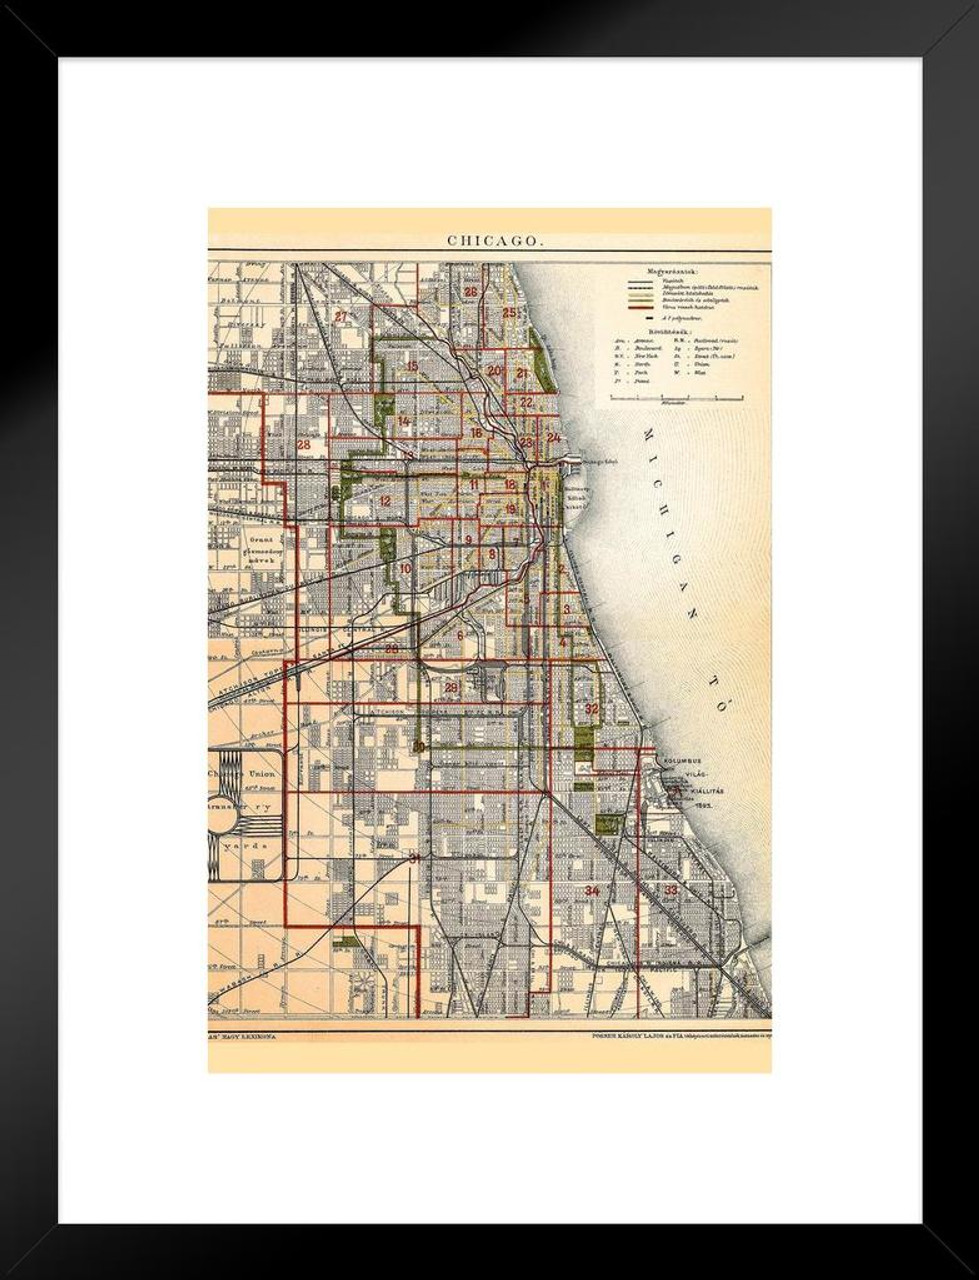 City of Chicago Illinois Historic Antique Style Map Matted Framed Wall Printable Map Of Chicago Illinois on printable map of chicago attractions, map of north lake shore drive chicago, printable road map of illinois, printable map of downtown chicago magnificent mile, printable map of illinois highways, printable chicago skyline, printable downtown chicago city map, whites bridge chicago, printable map of navy pier chicago, printable map of southern illinois, printable map of northern illinois, map of bad dangerous neighborhoods in chicago, printable map of illinois cities, print map of chicago,